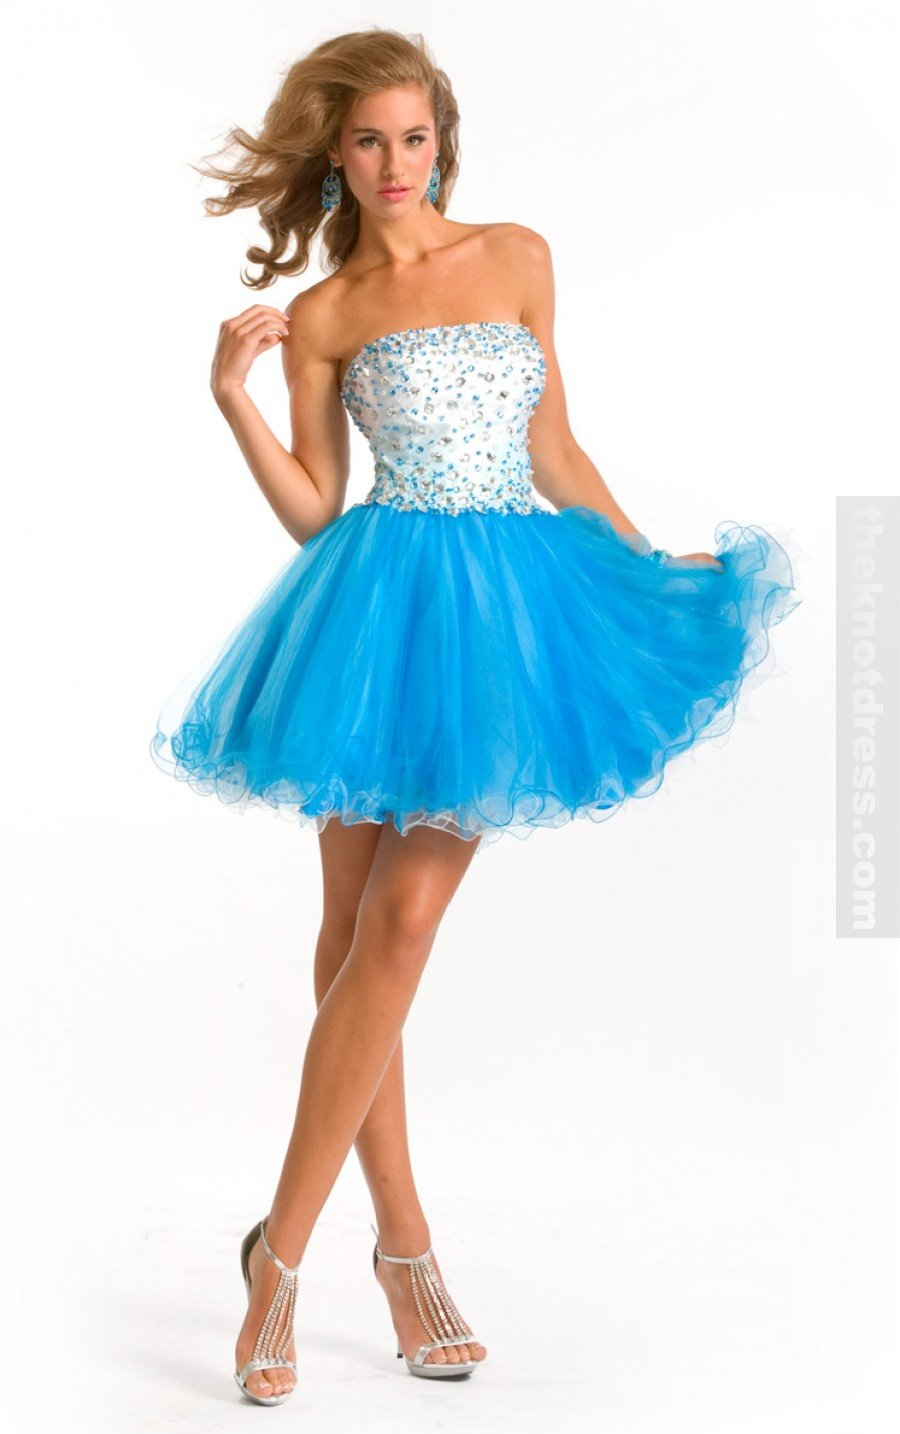 Ball Gown Knee-length Strapless Dress, Cheap Party Dresses Sale Uk